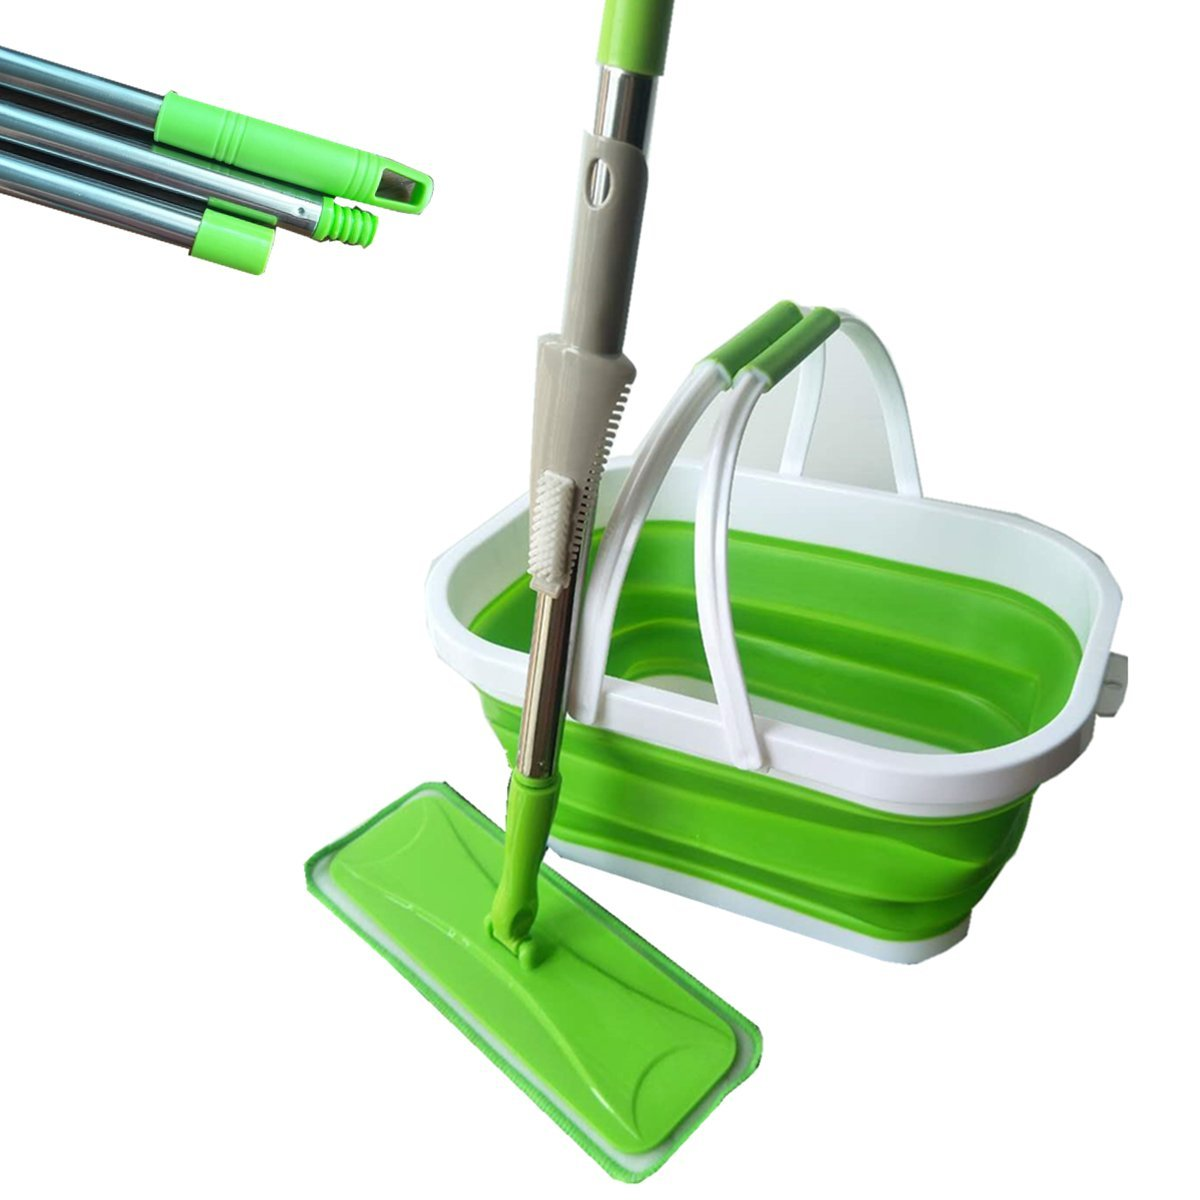 QINGQIU Mini Flat Mop kit is a Commercial Grade Microfiber Wet or Dry Mop together with 10L Foldable Silicone Collapsible Bucket and Mop Pad Cleaning Scraper,Mop Pole that Stretches From 31 to 48 Inch